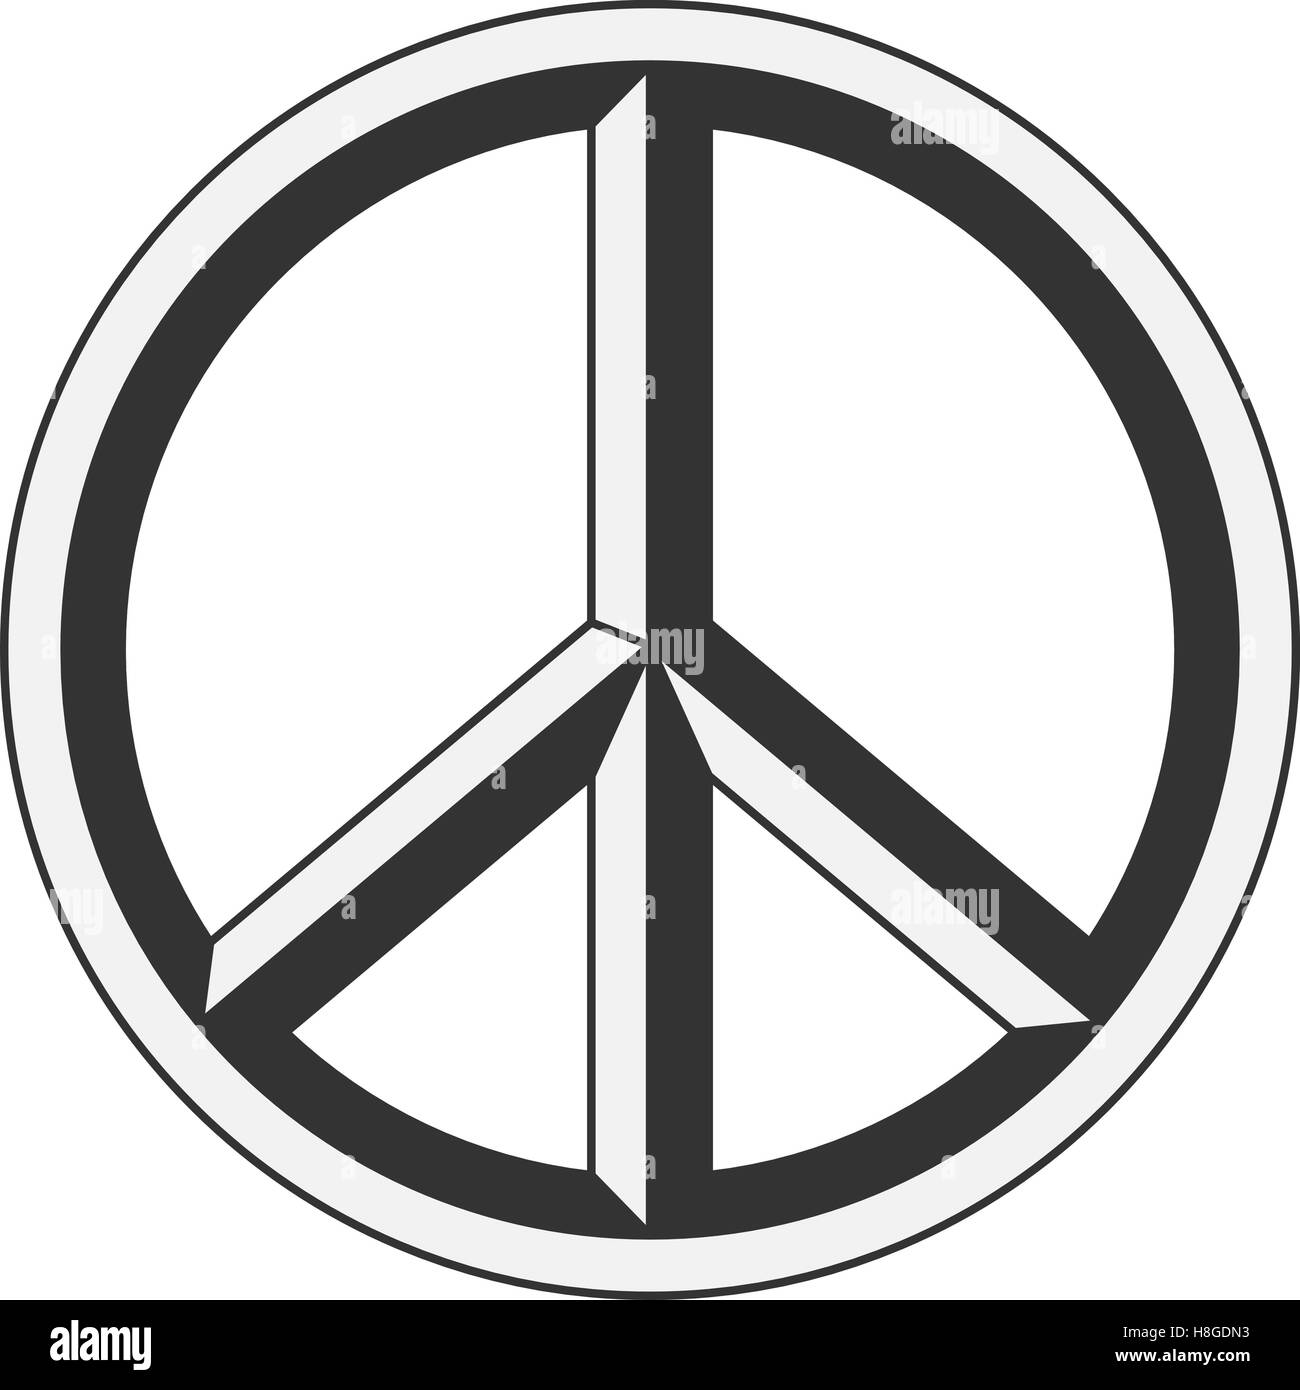 Peace sign hippie symbol of peace stock vector art illustration peace sign hippie symbol of peace buycottarizona